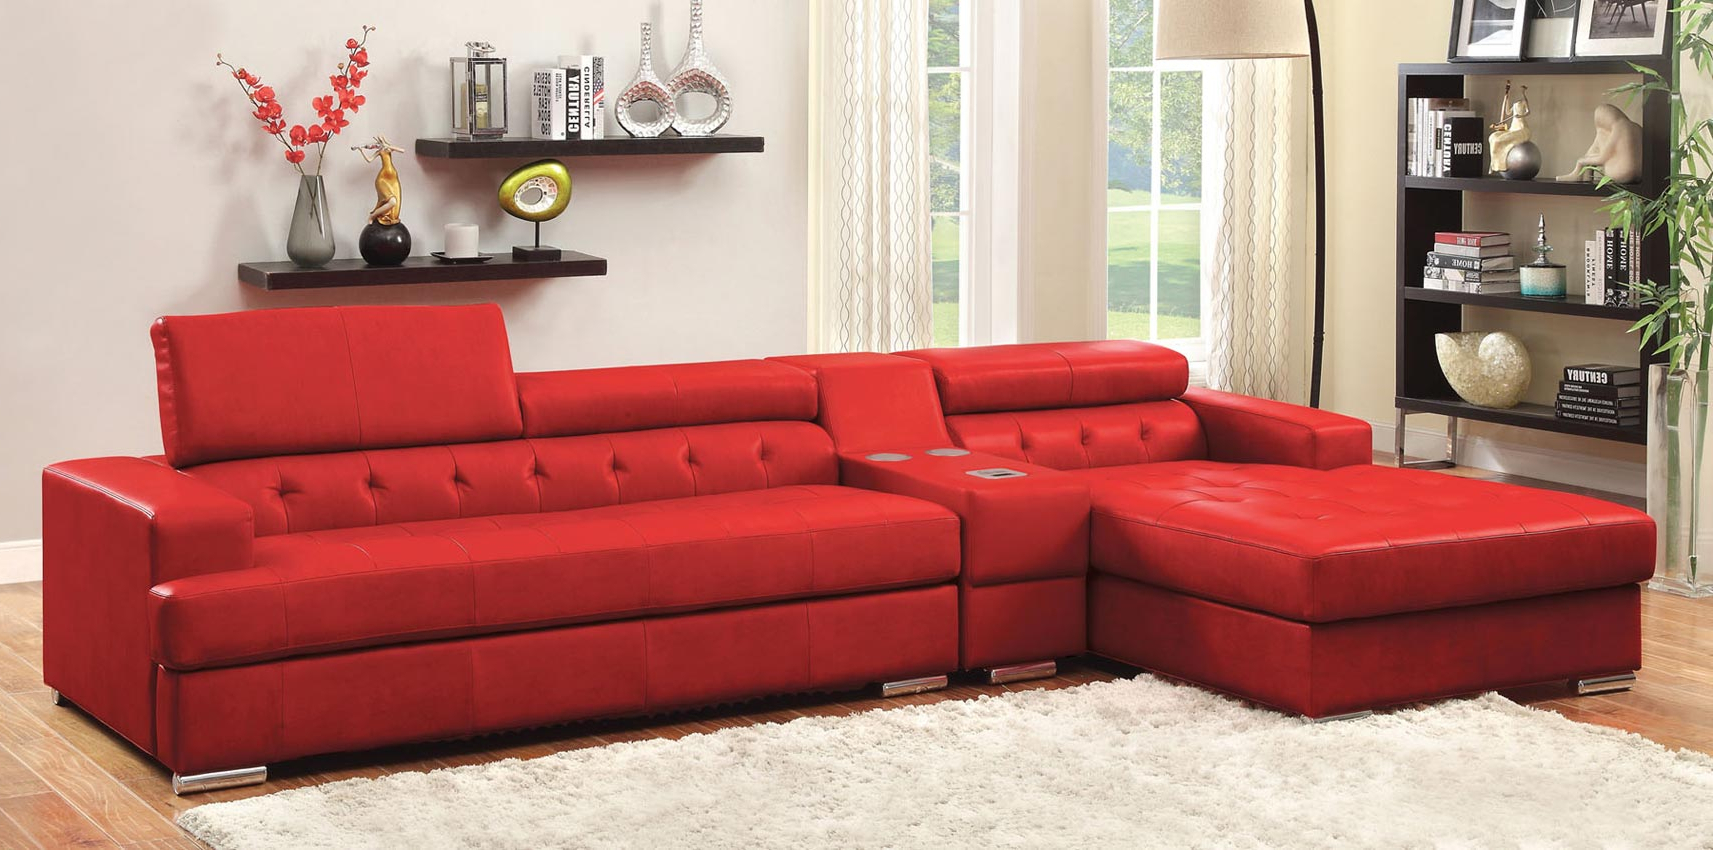 3 Pcs Red Leather Sofa Set With Console Pertaining To Popular Red Sofas (View 4 of 20)